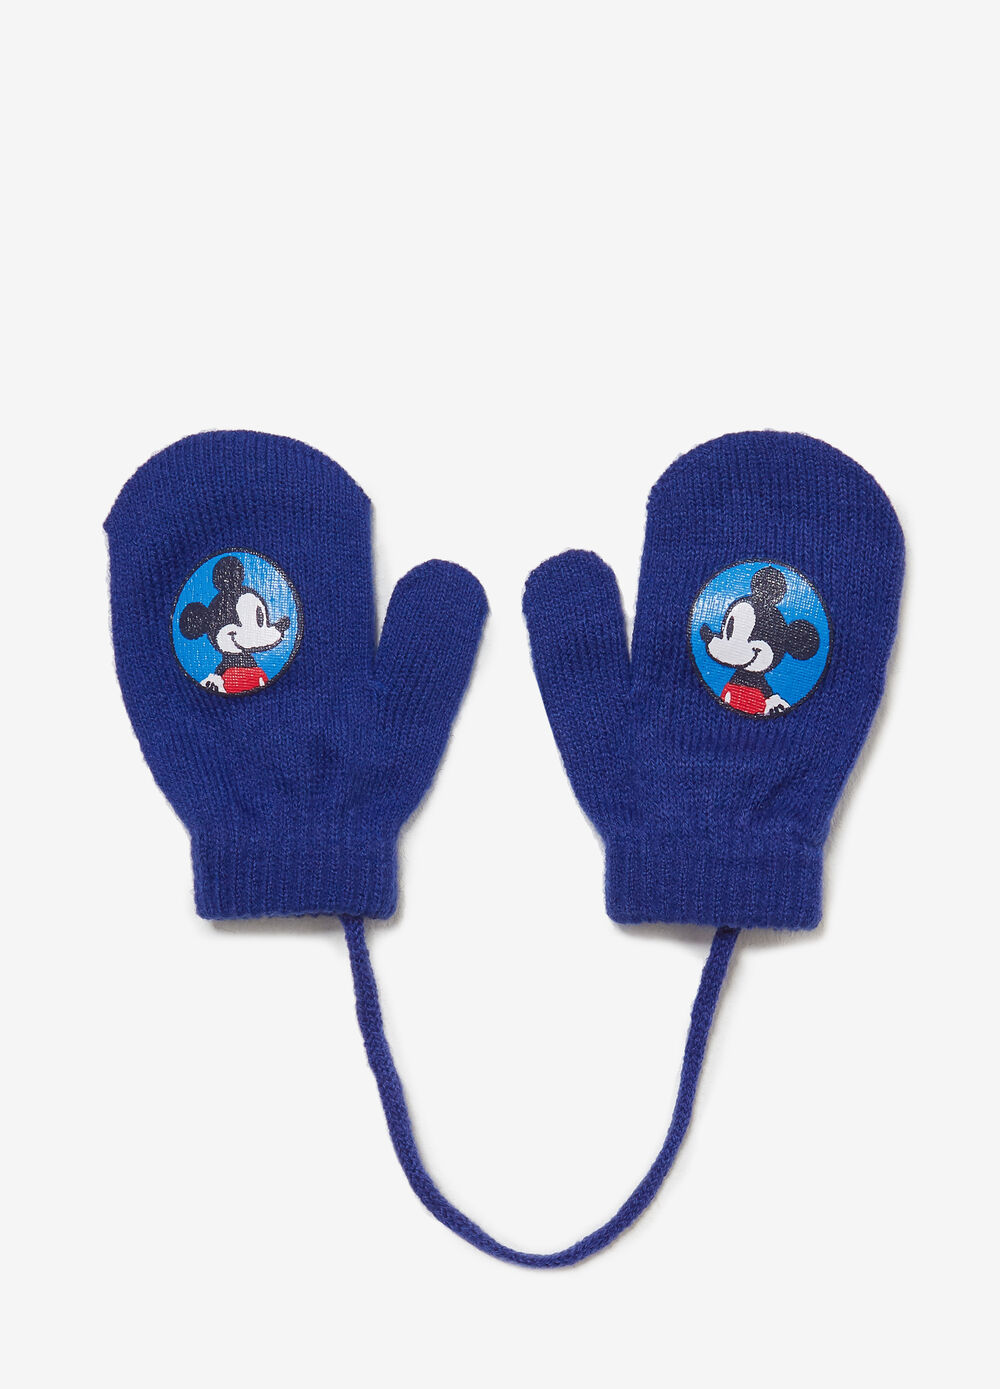 Mittens with Mickey Mouse print